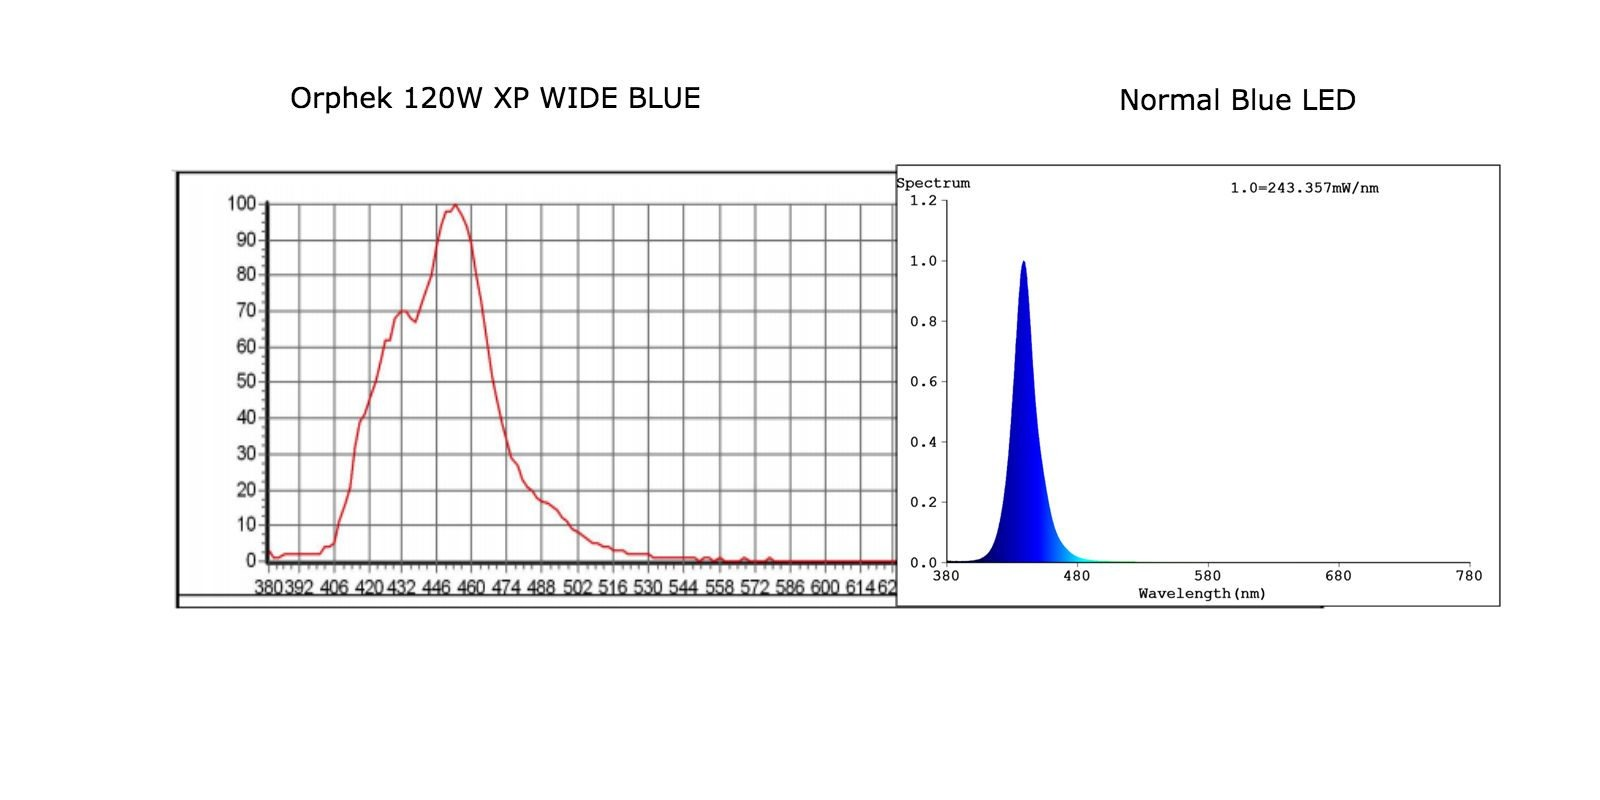 Orphek 120W-XP Wide BLUE Spectrum vs Normal Blue LED